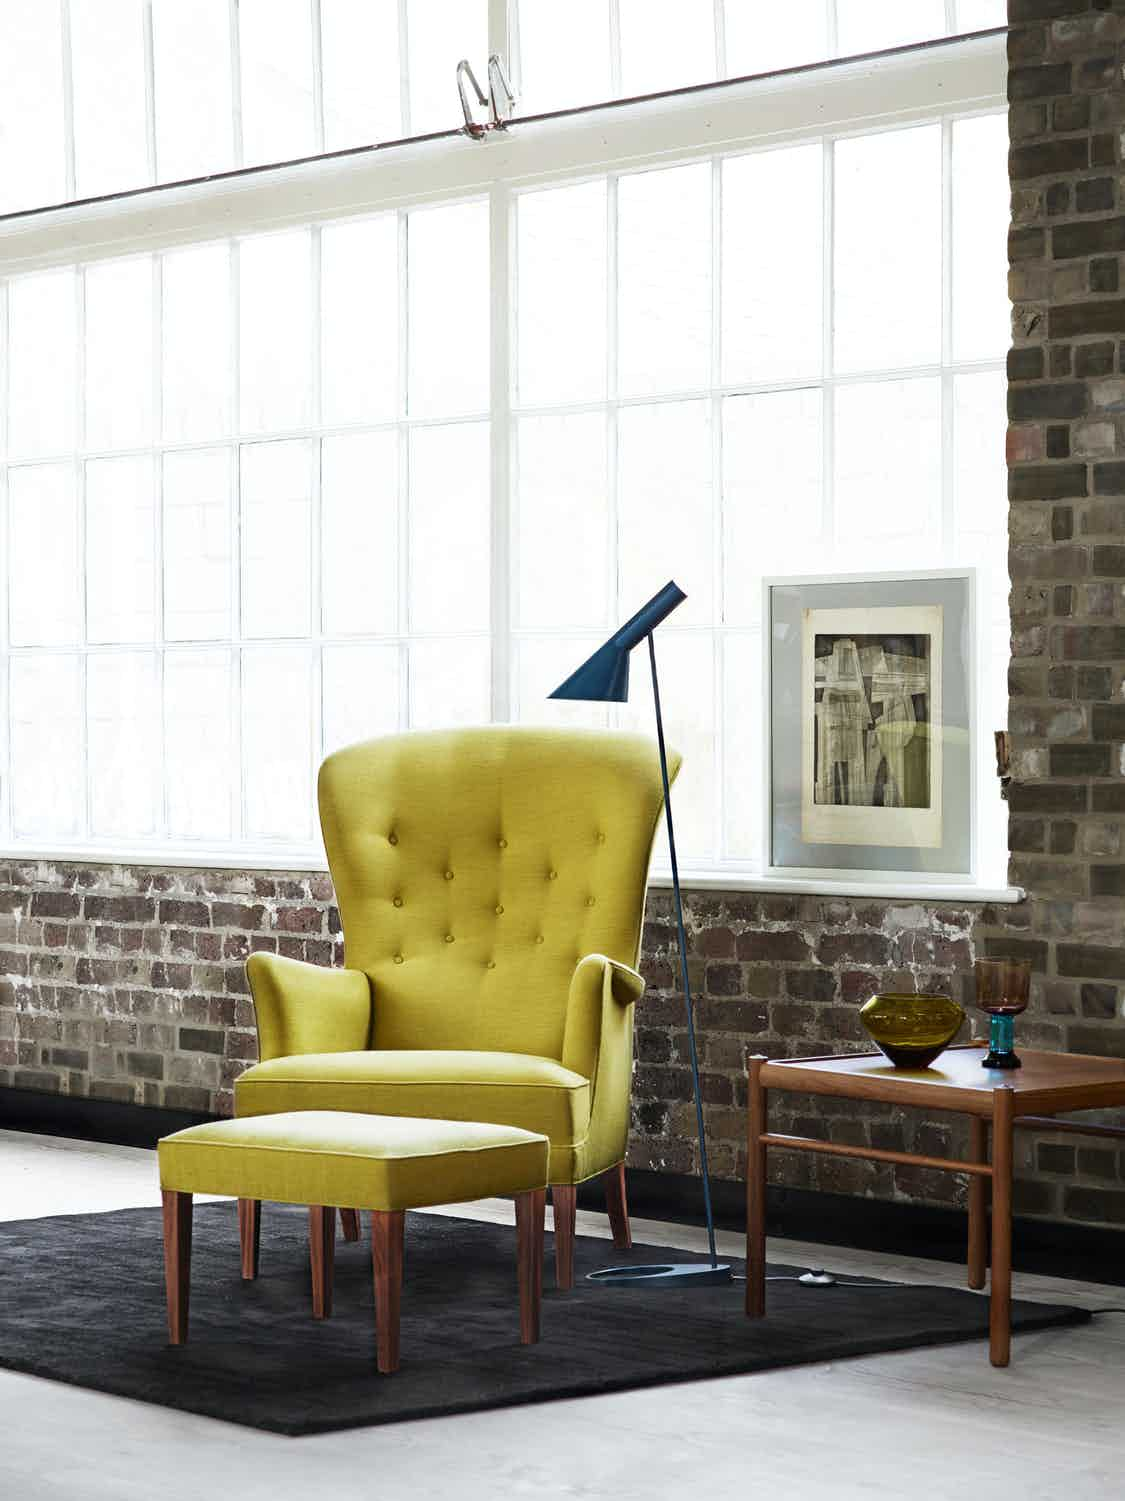 Heritage Chair by Carl Hansen & Son, now available at Haute Living